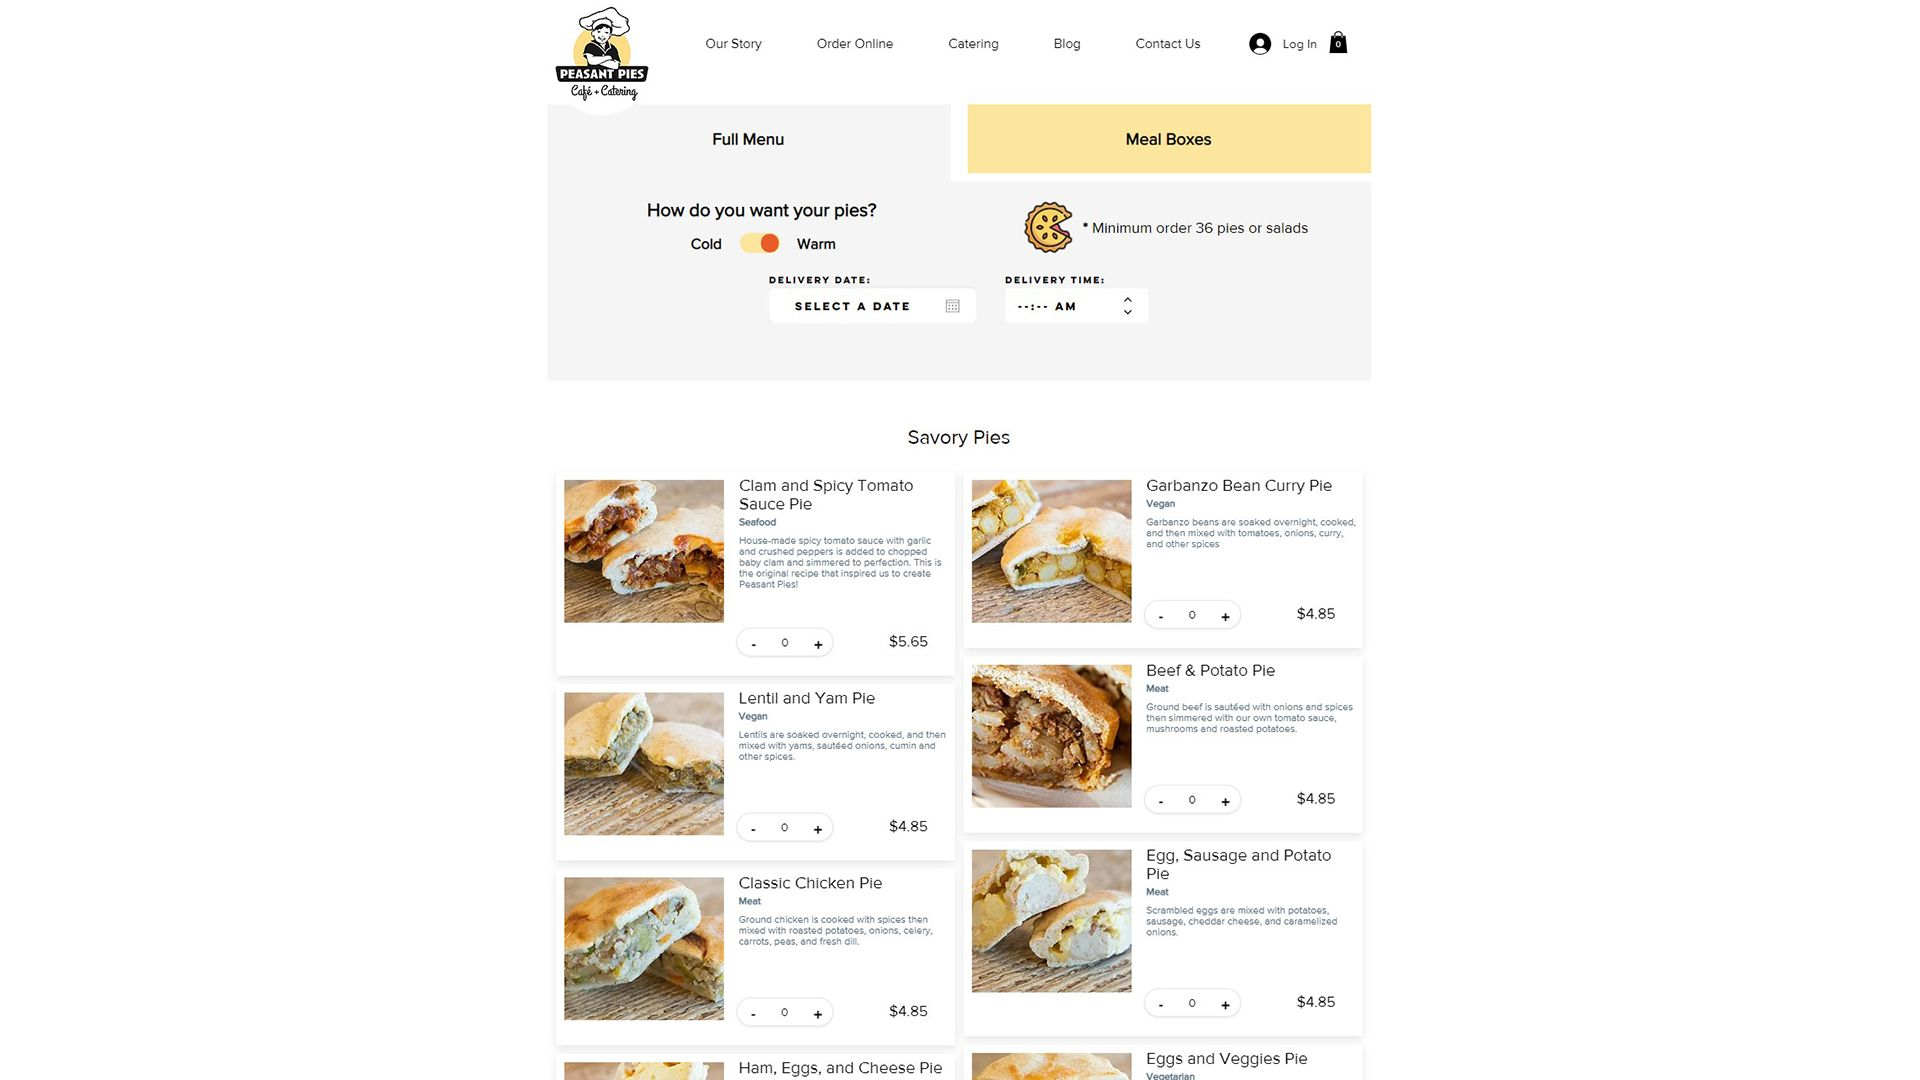 A custom Wix.com site with multi stage ordering